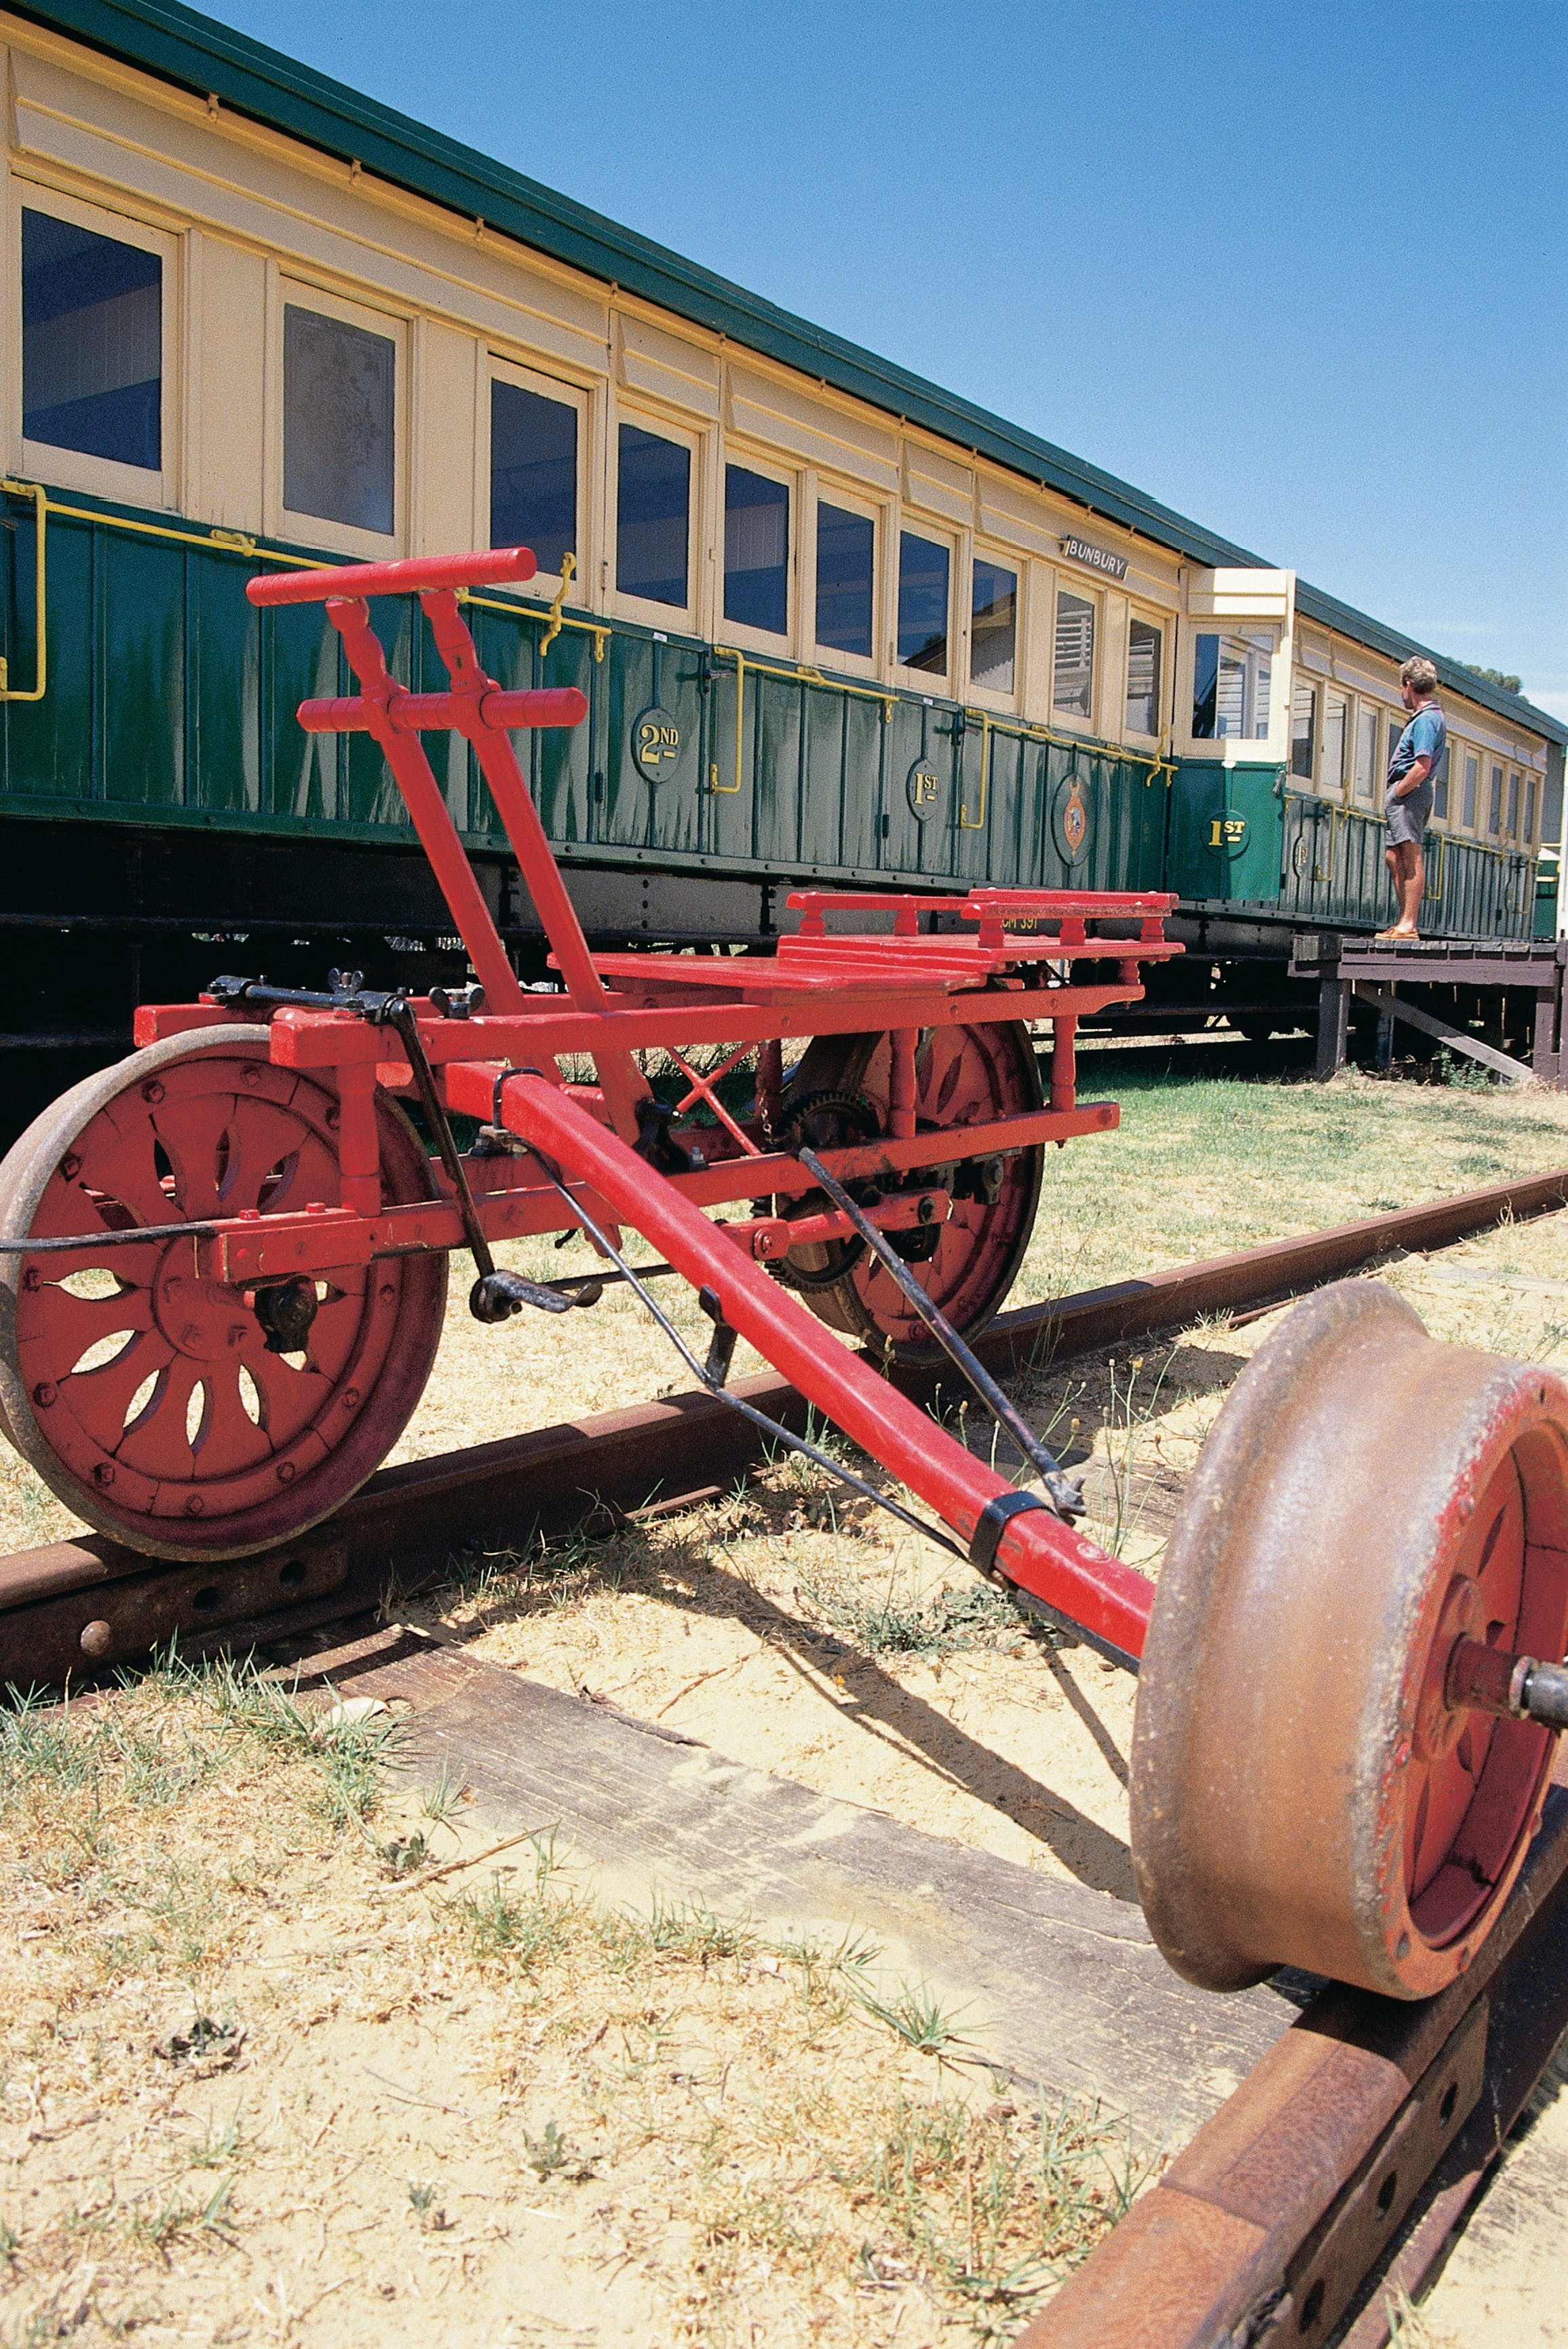 South West Rail and Heritage Centre - Tourism Adelaide